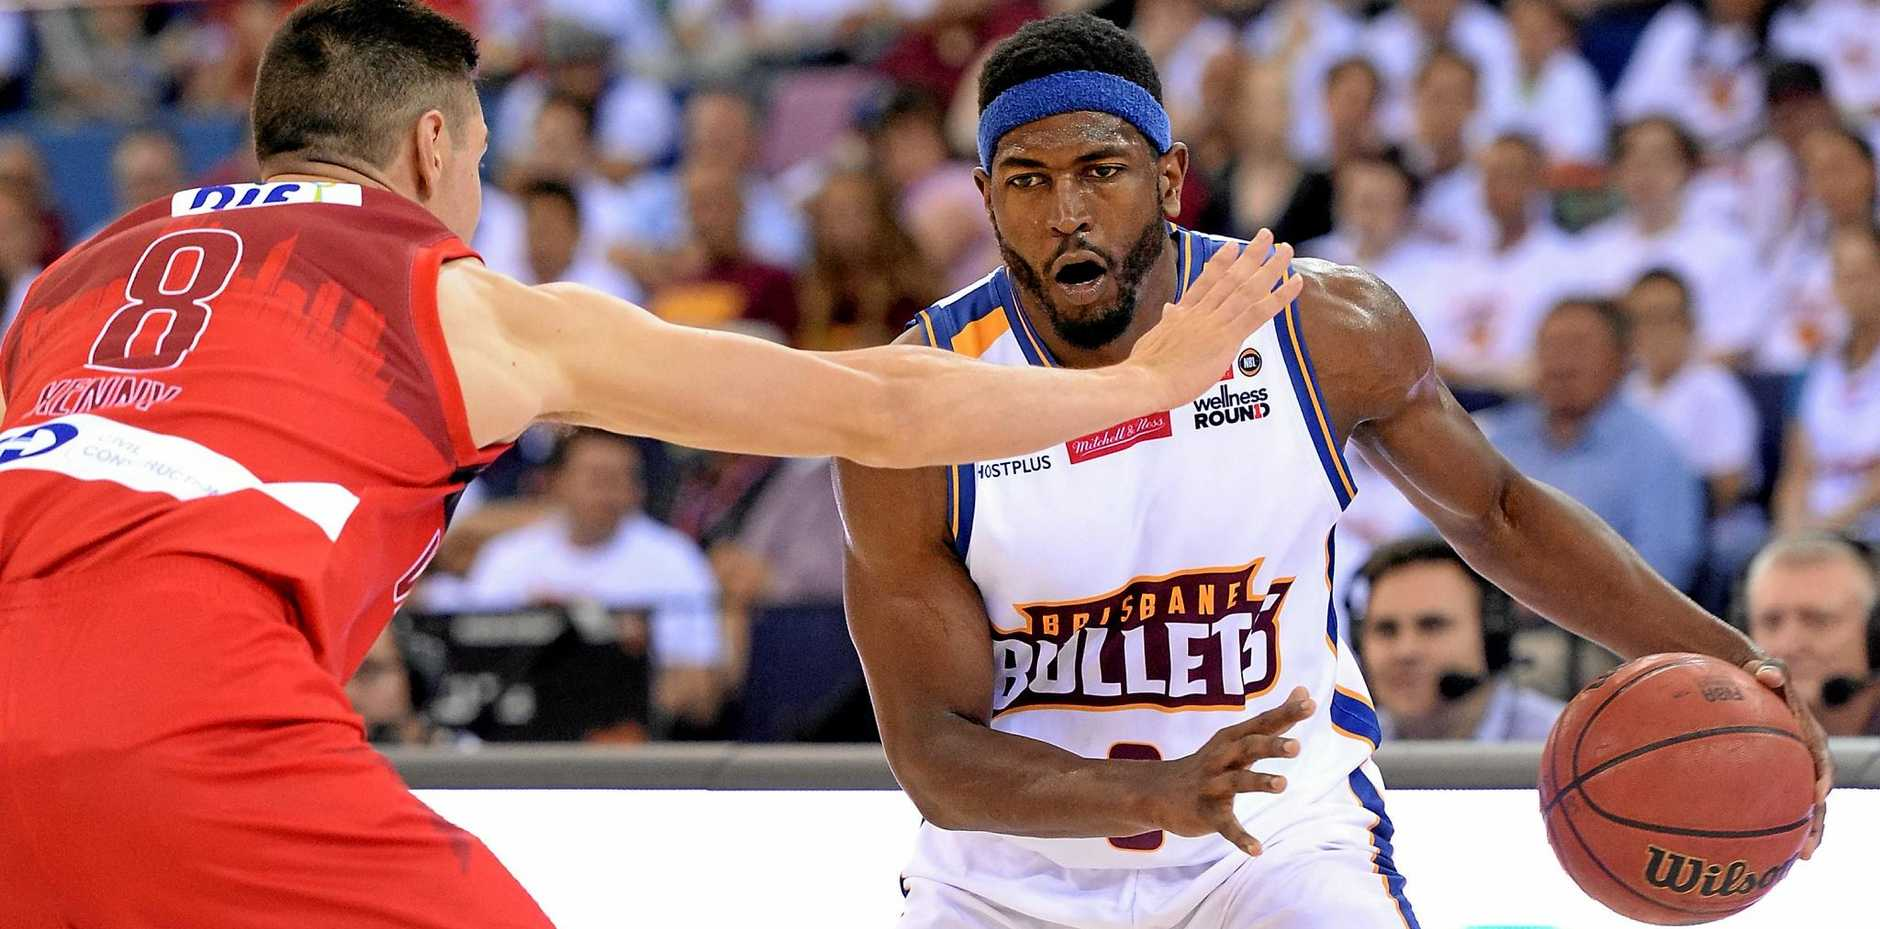 Brisbane's Jermaine Beal looks to take on the defence during the round one NBL match between the Bullets and the Wildcats at the Brisbane Entertainment Centre.